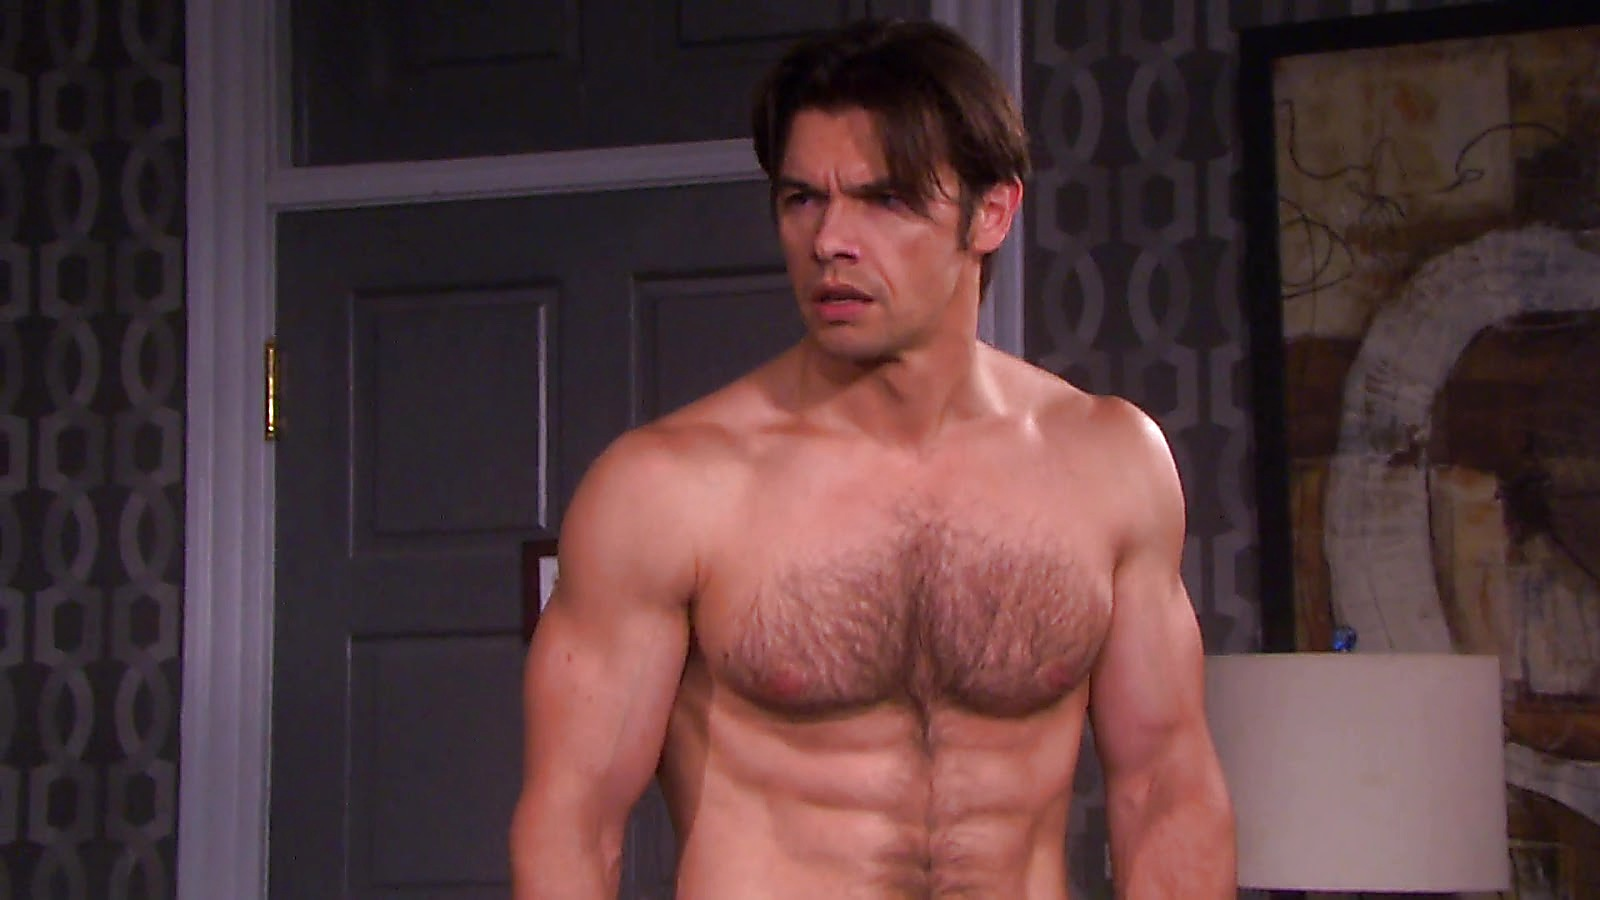 Paul Telfer Days Of Our Lives 2020 05 01 1588351980 0